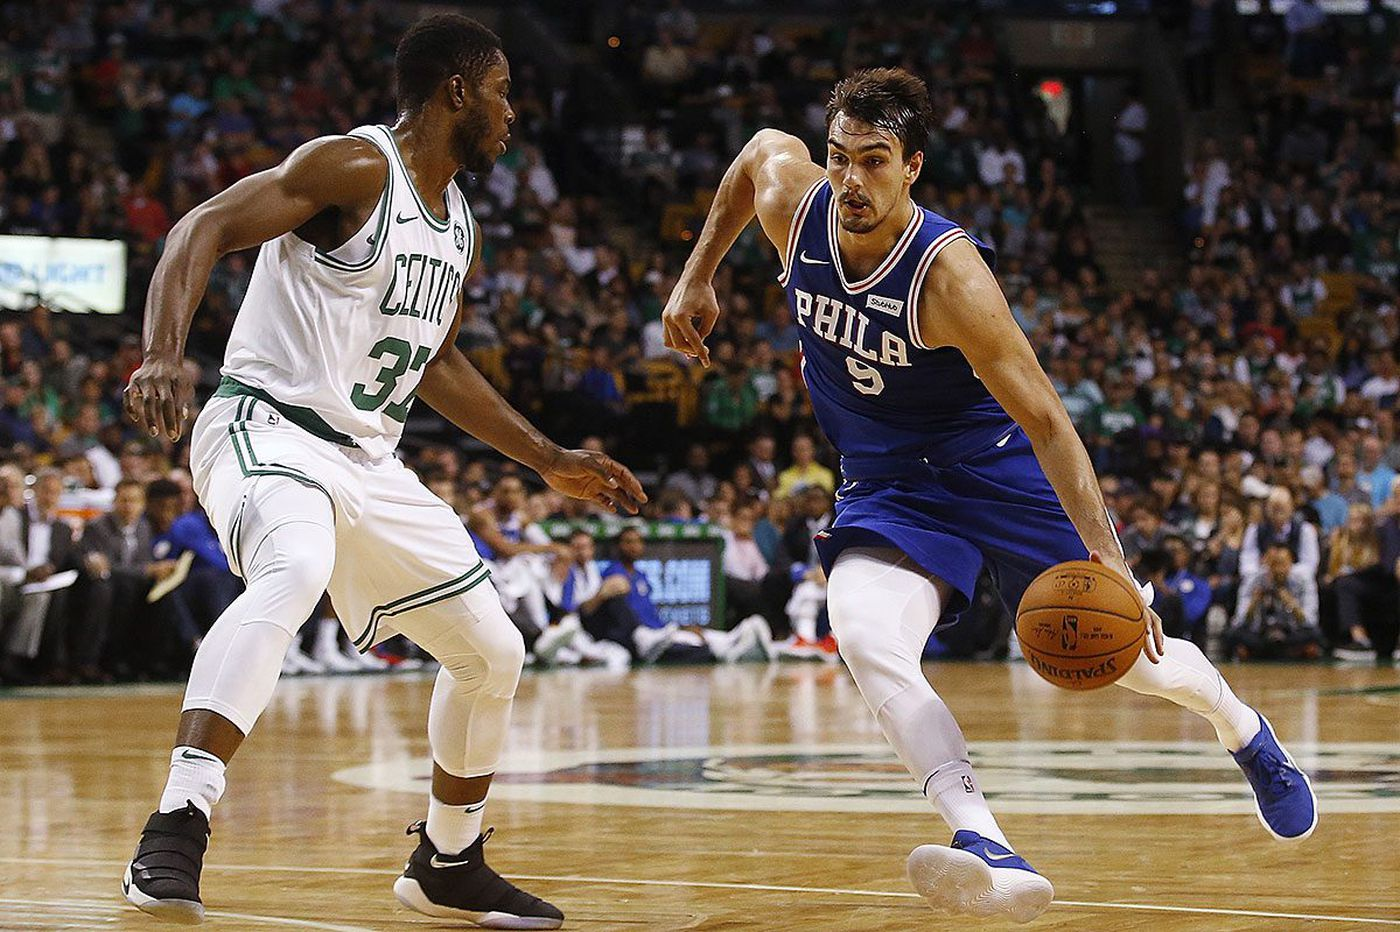 Sixers' Dario Saric knows he'll need to find groove off bench